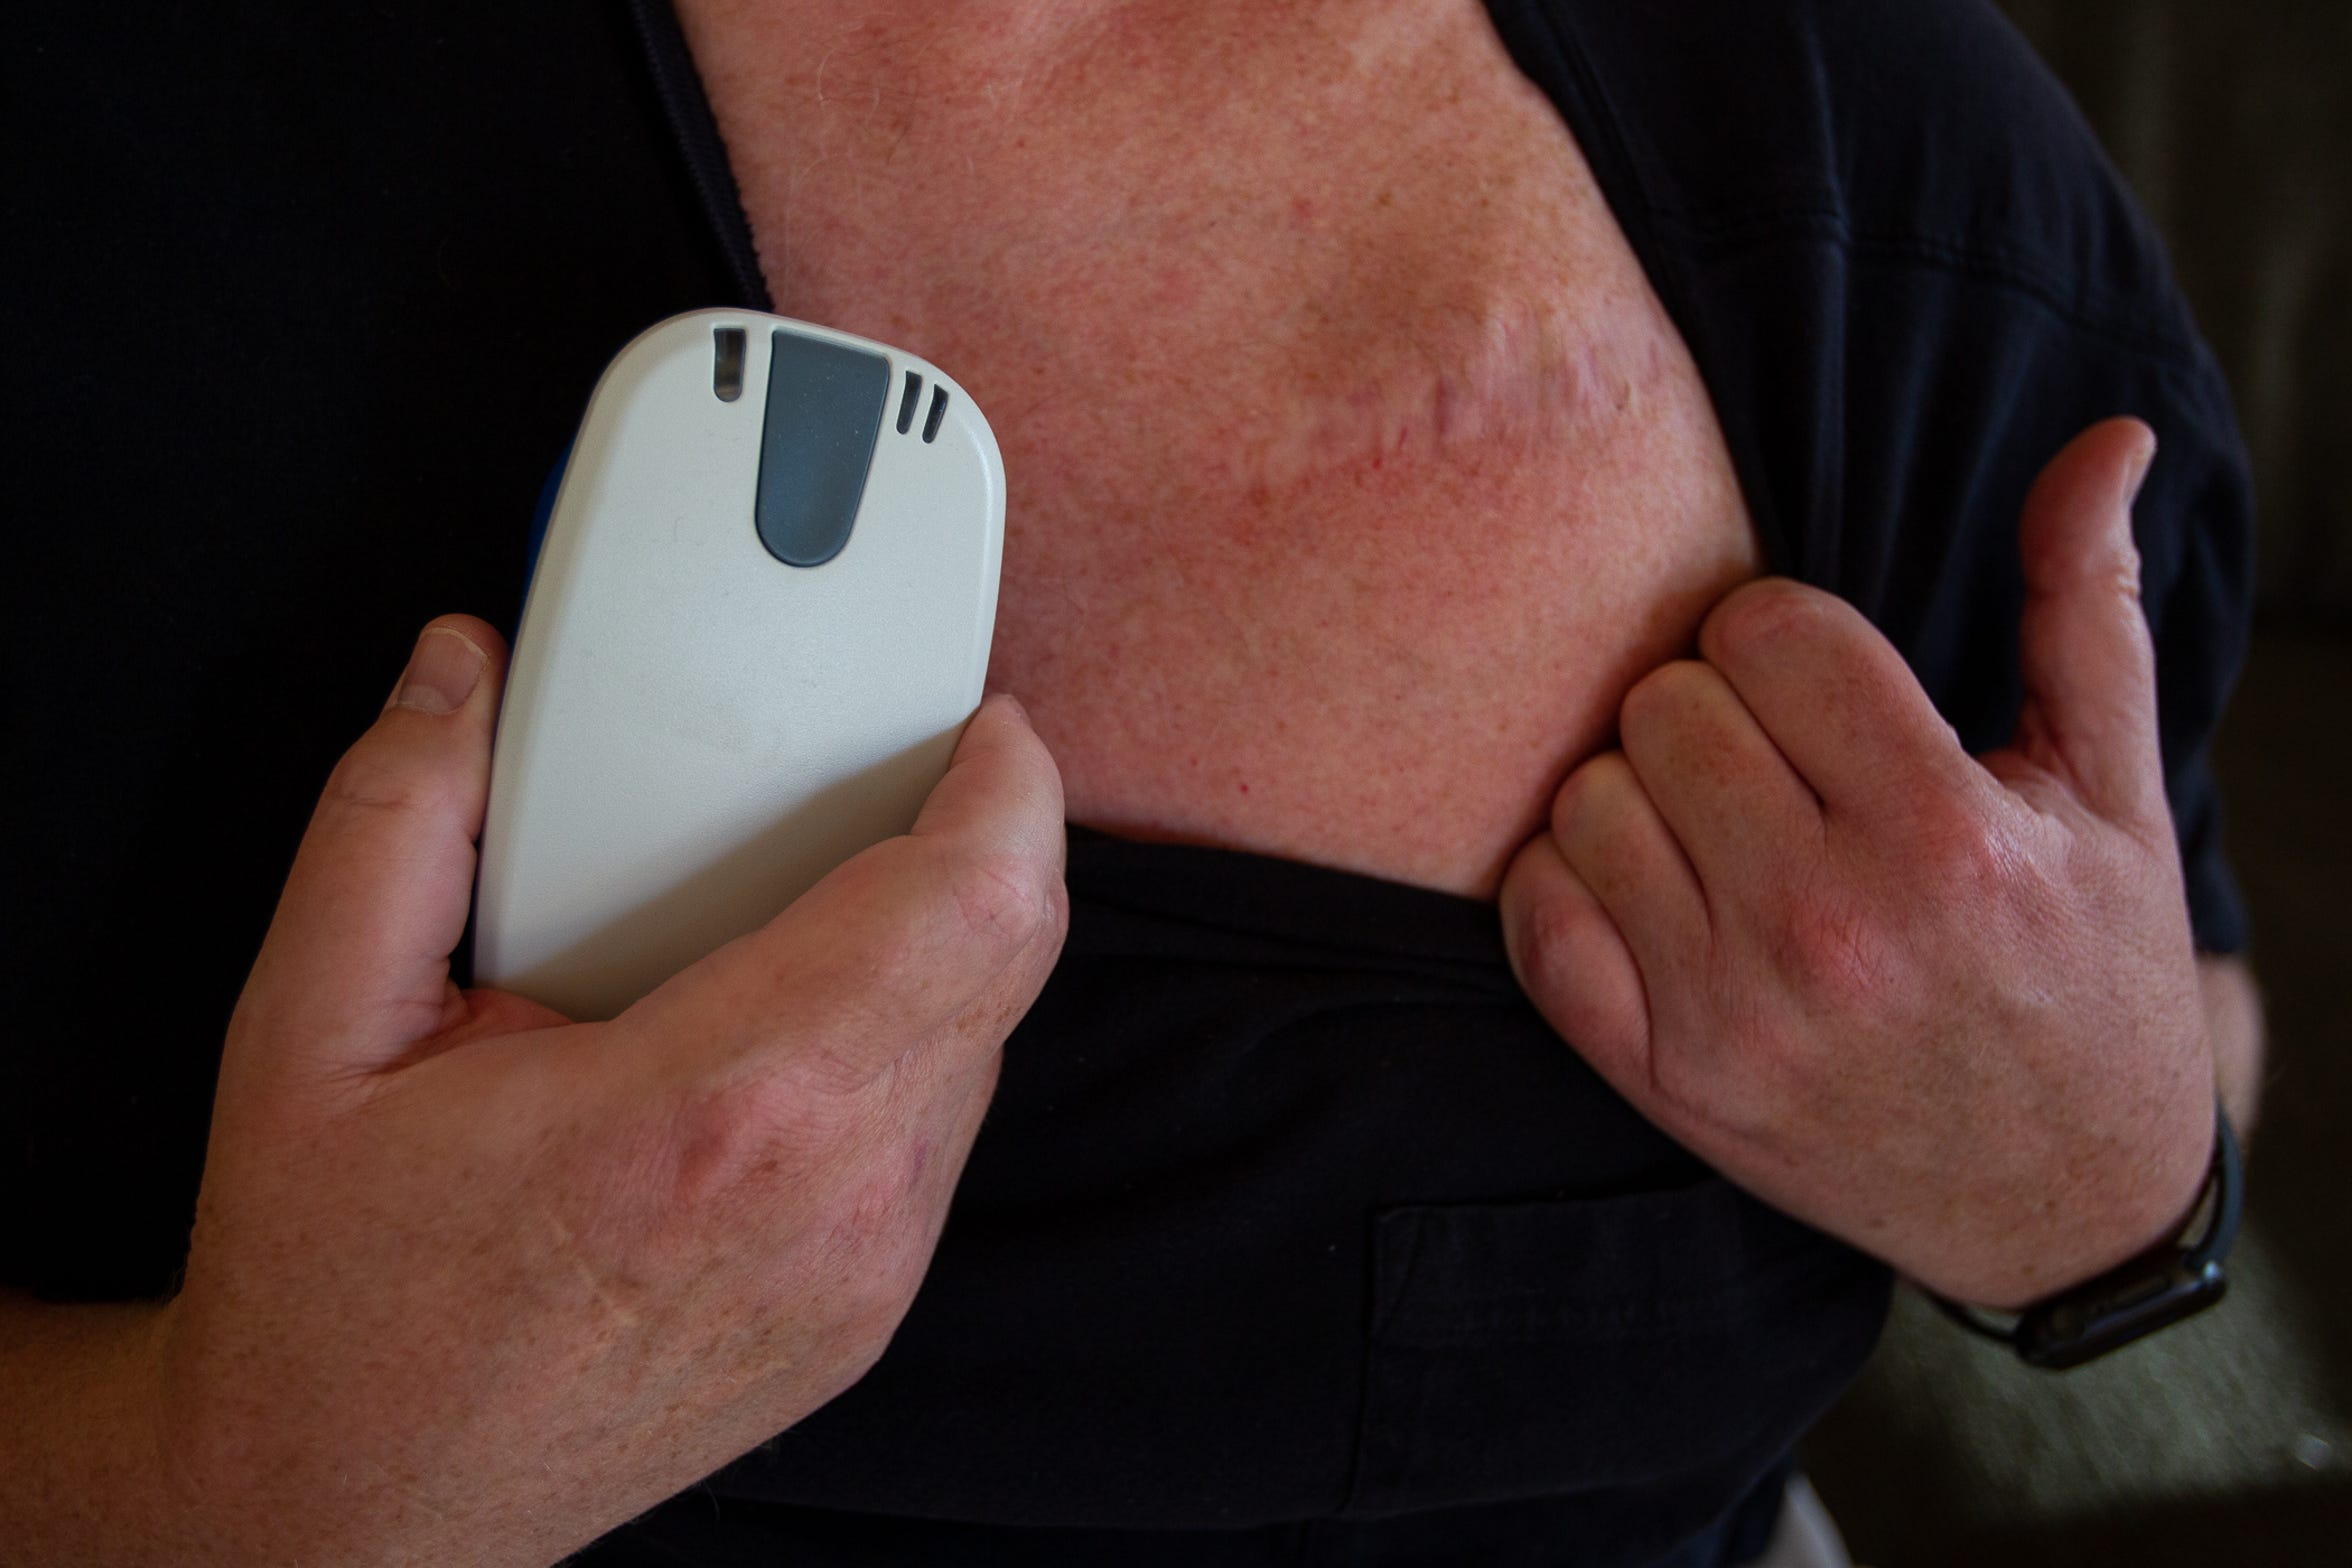 John Collins shows the scar from where his defibulator is placed.